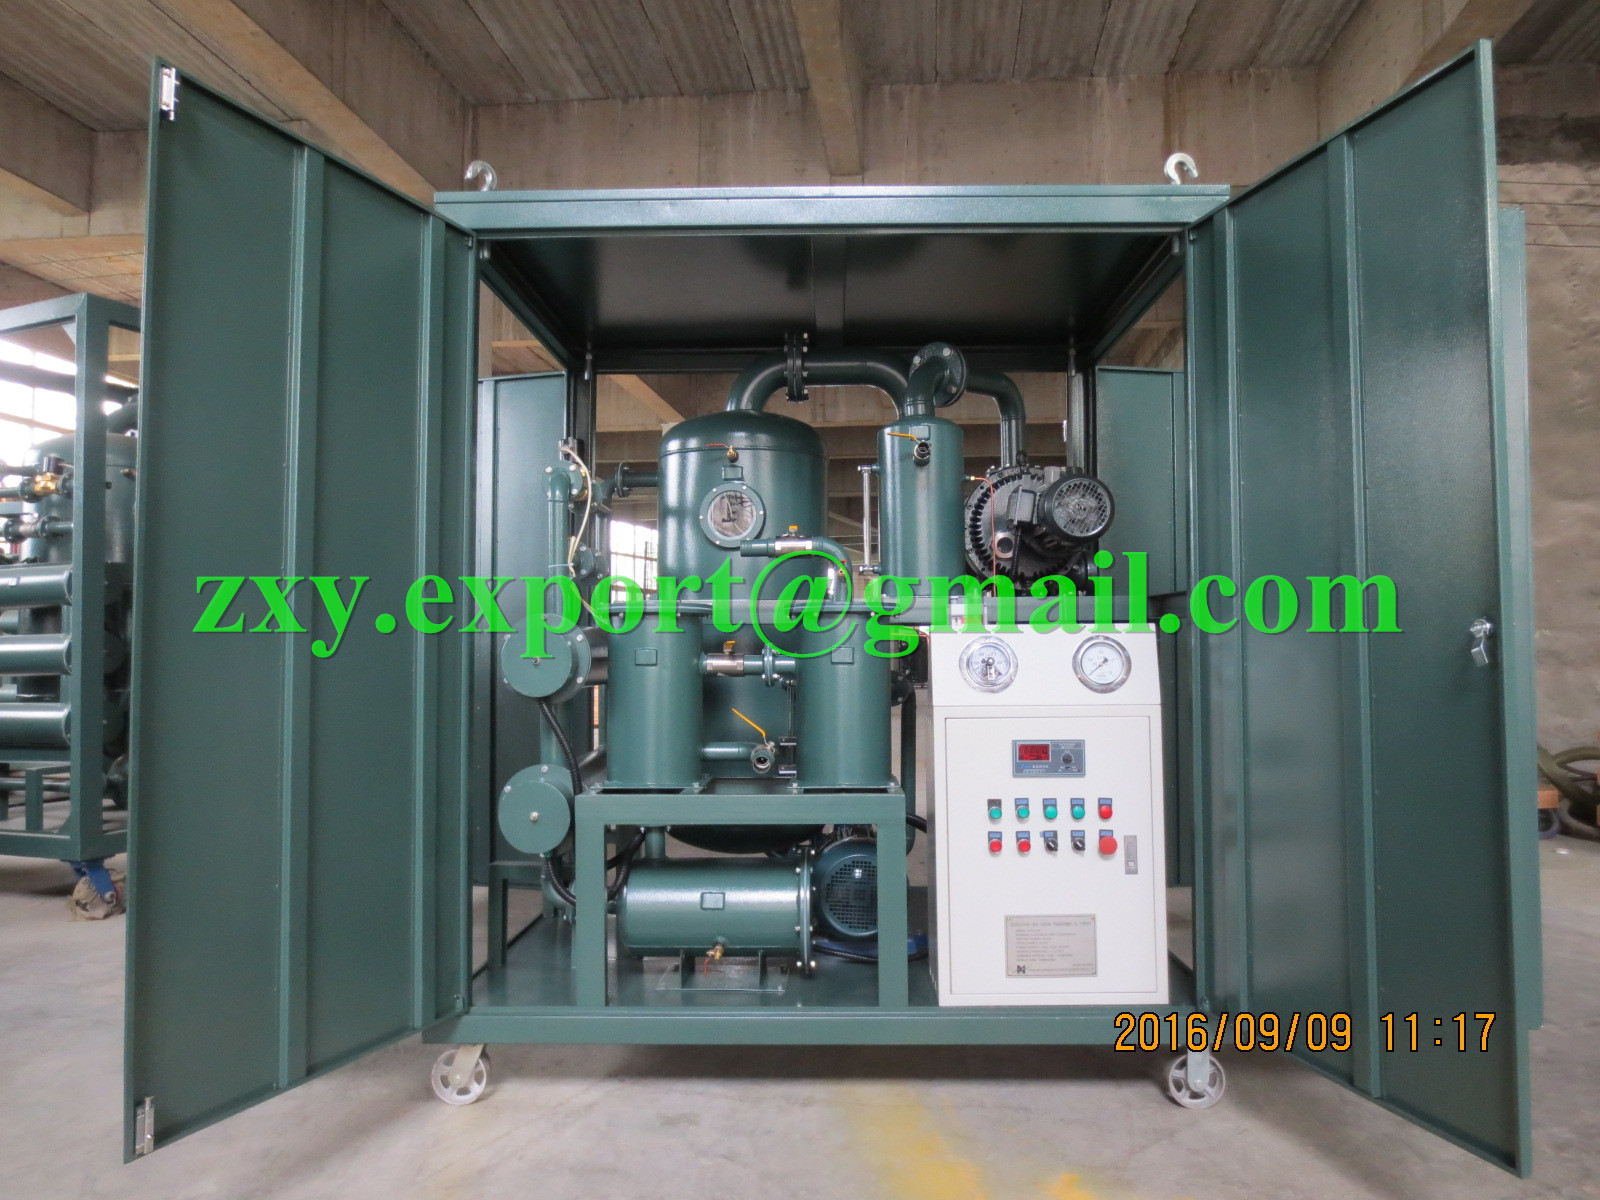 DOUBLE-STAGE high vacuum Transformer Oil Filtering, Dielectric Oil Purifying Plant